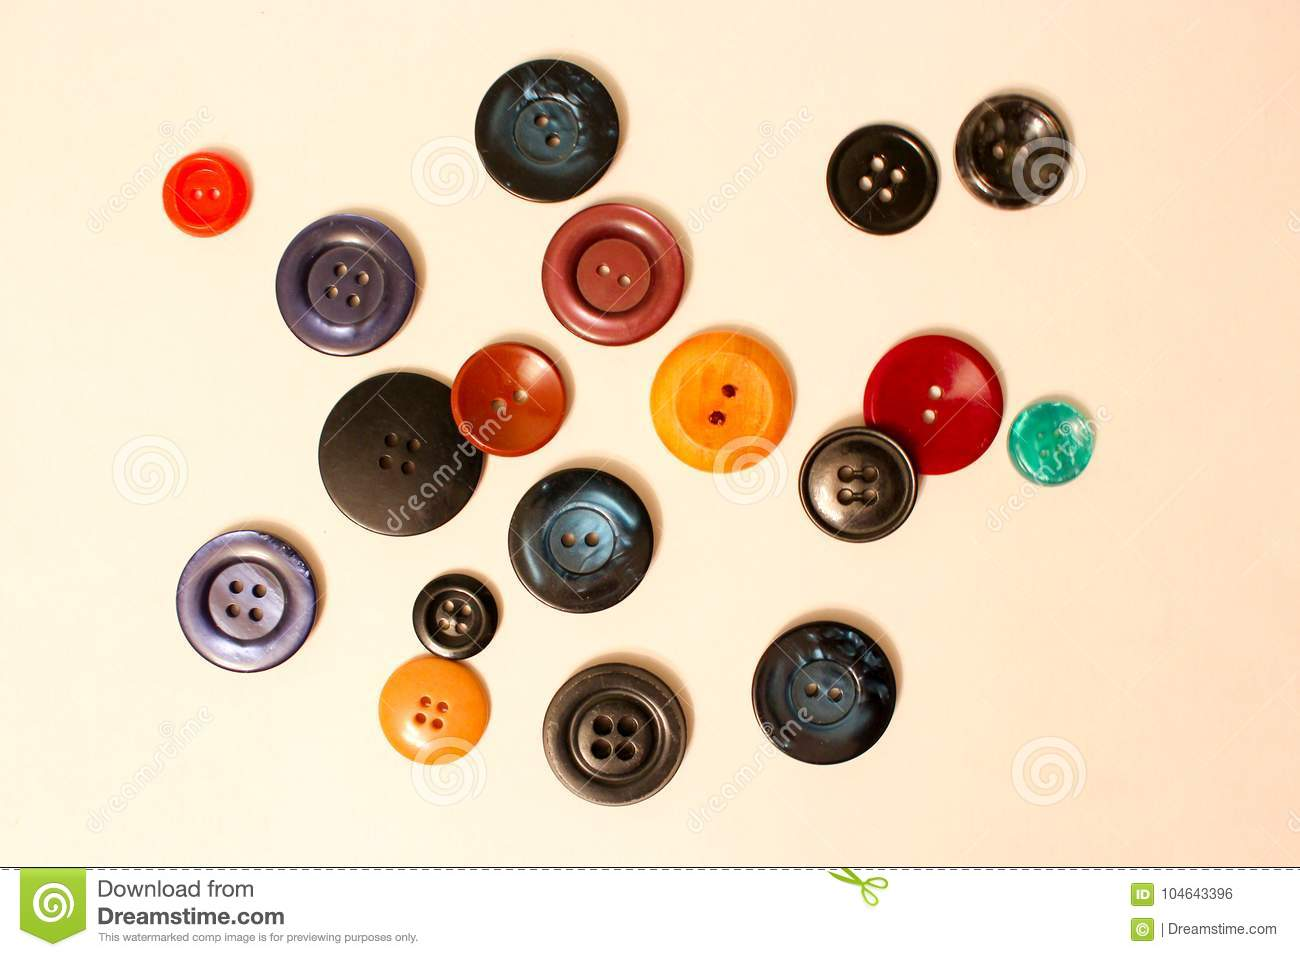 Colored buttons for clothes and ornaments